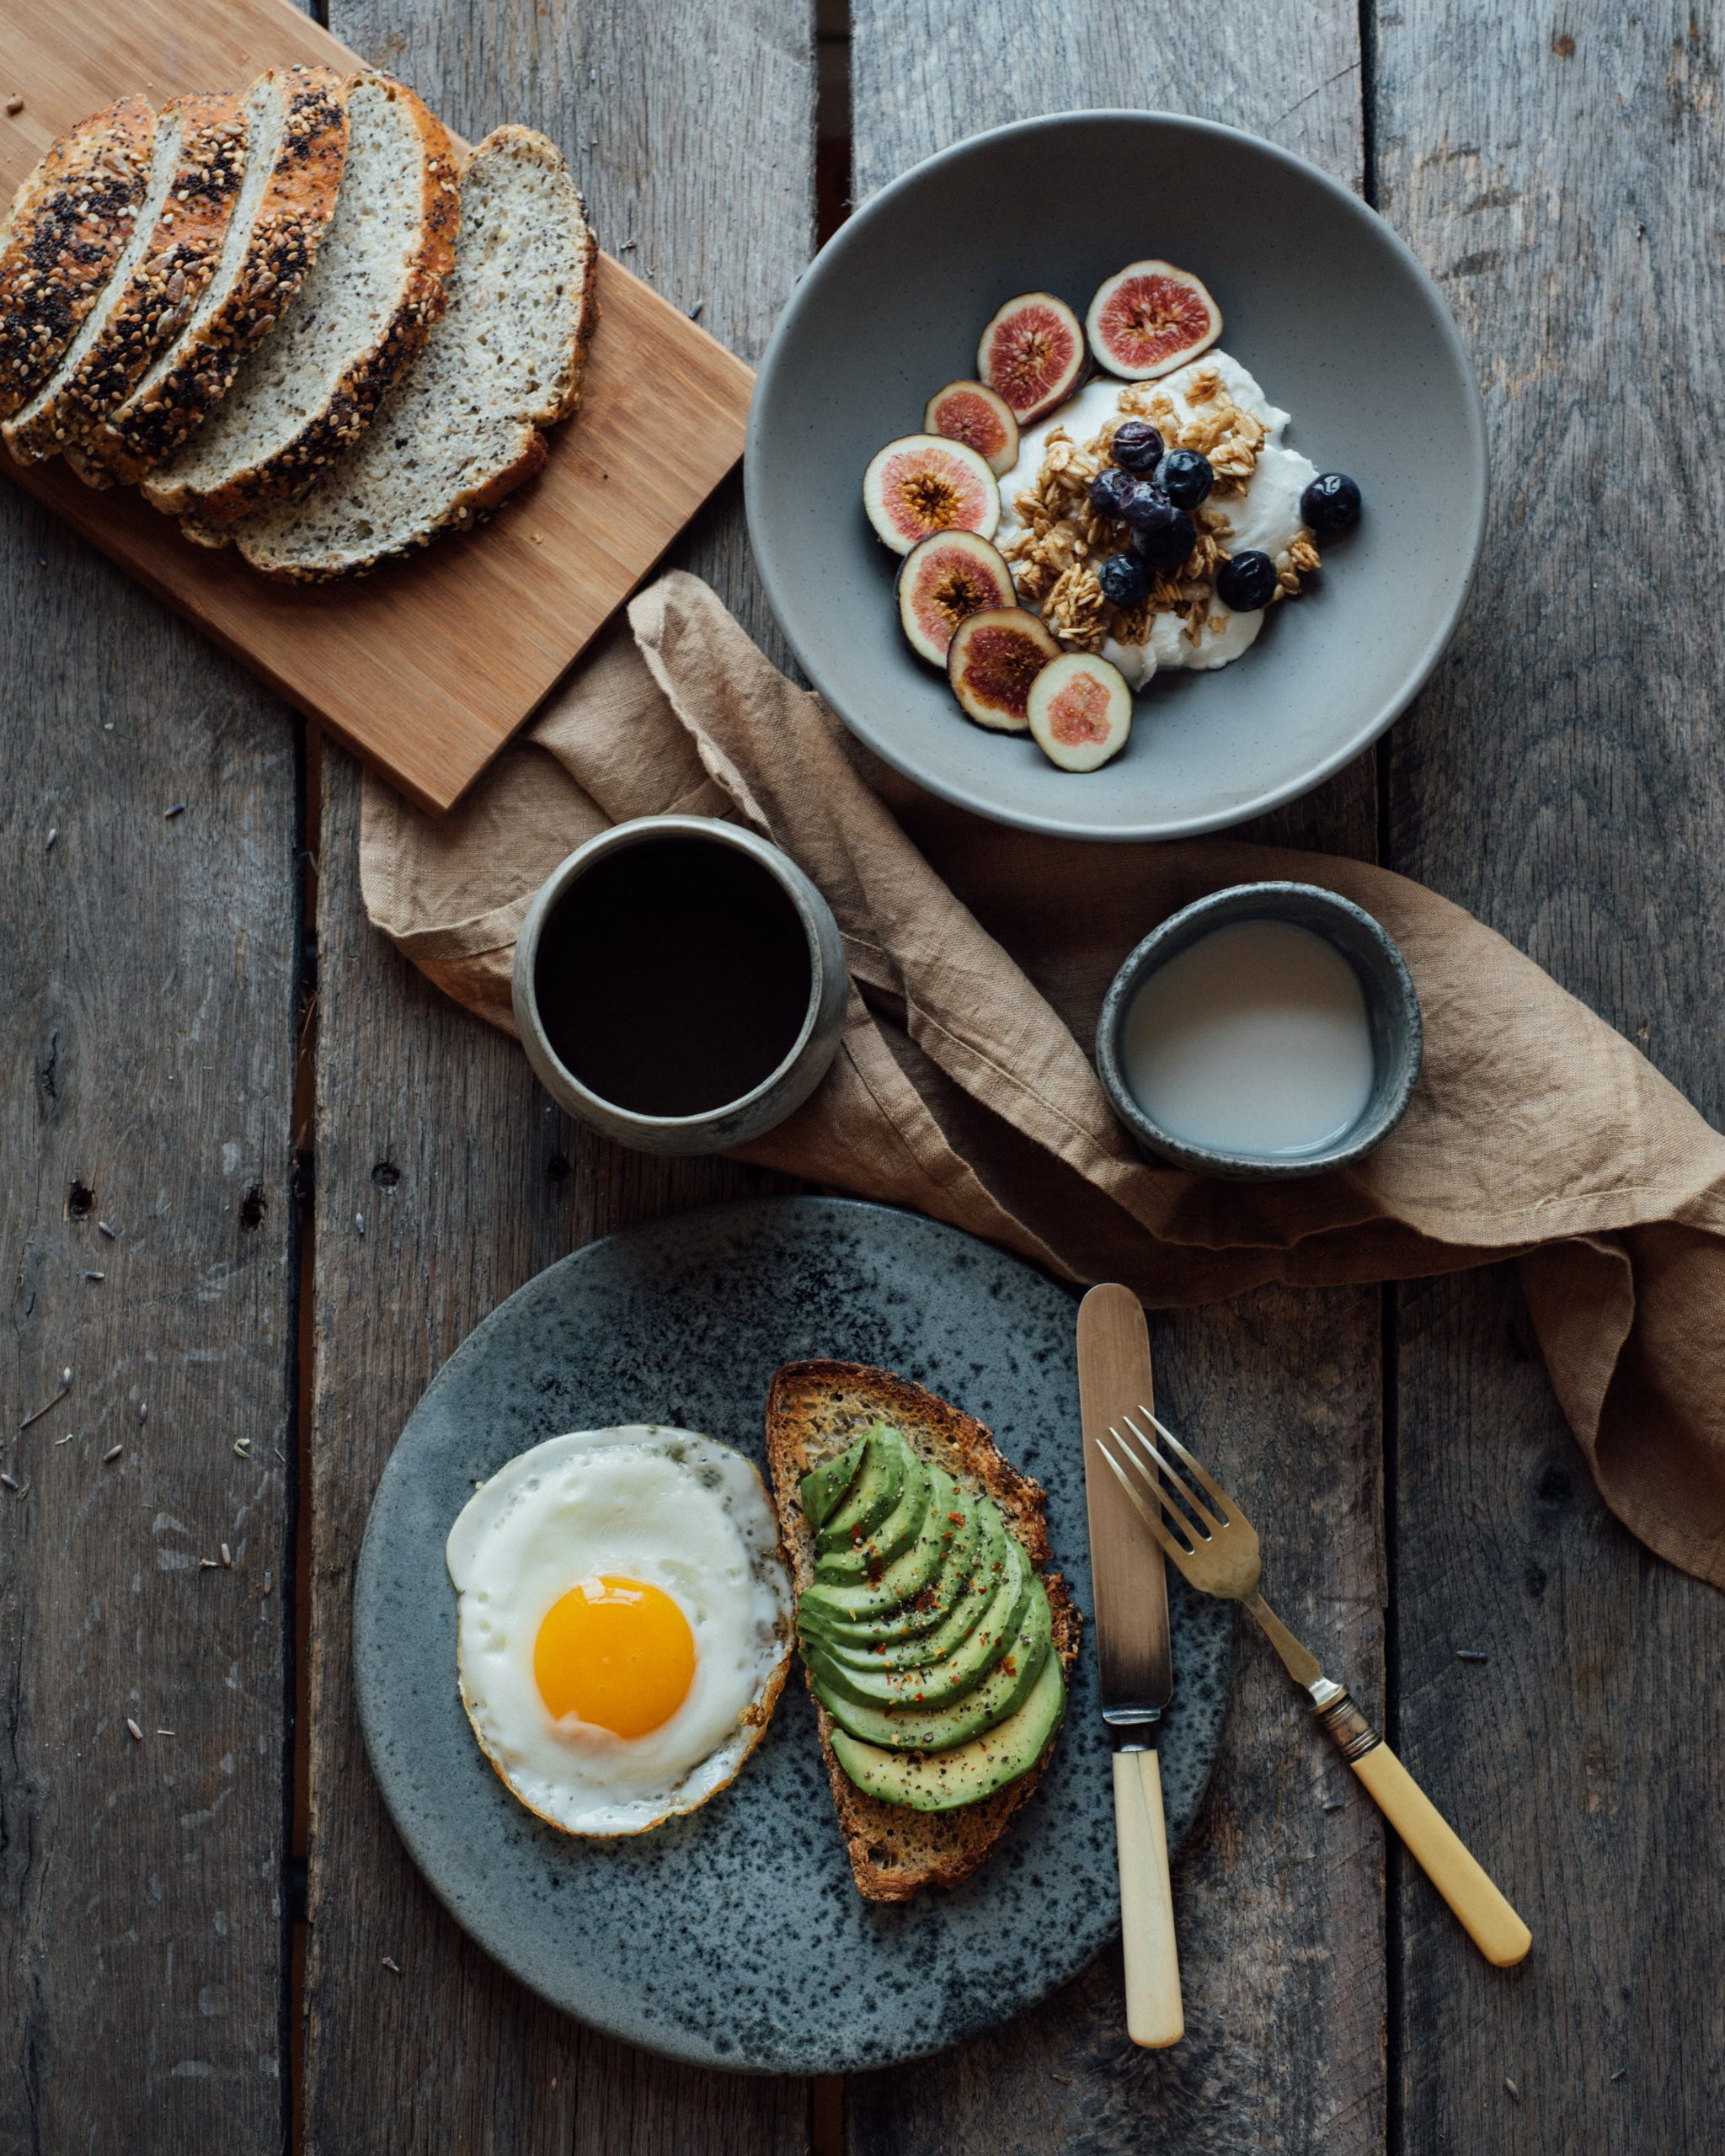 morning protein for muscle growth